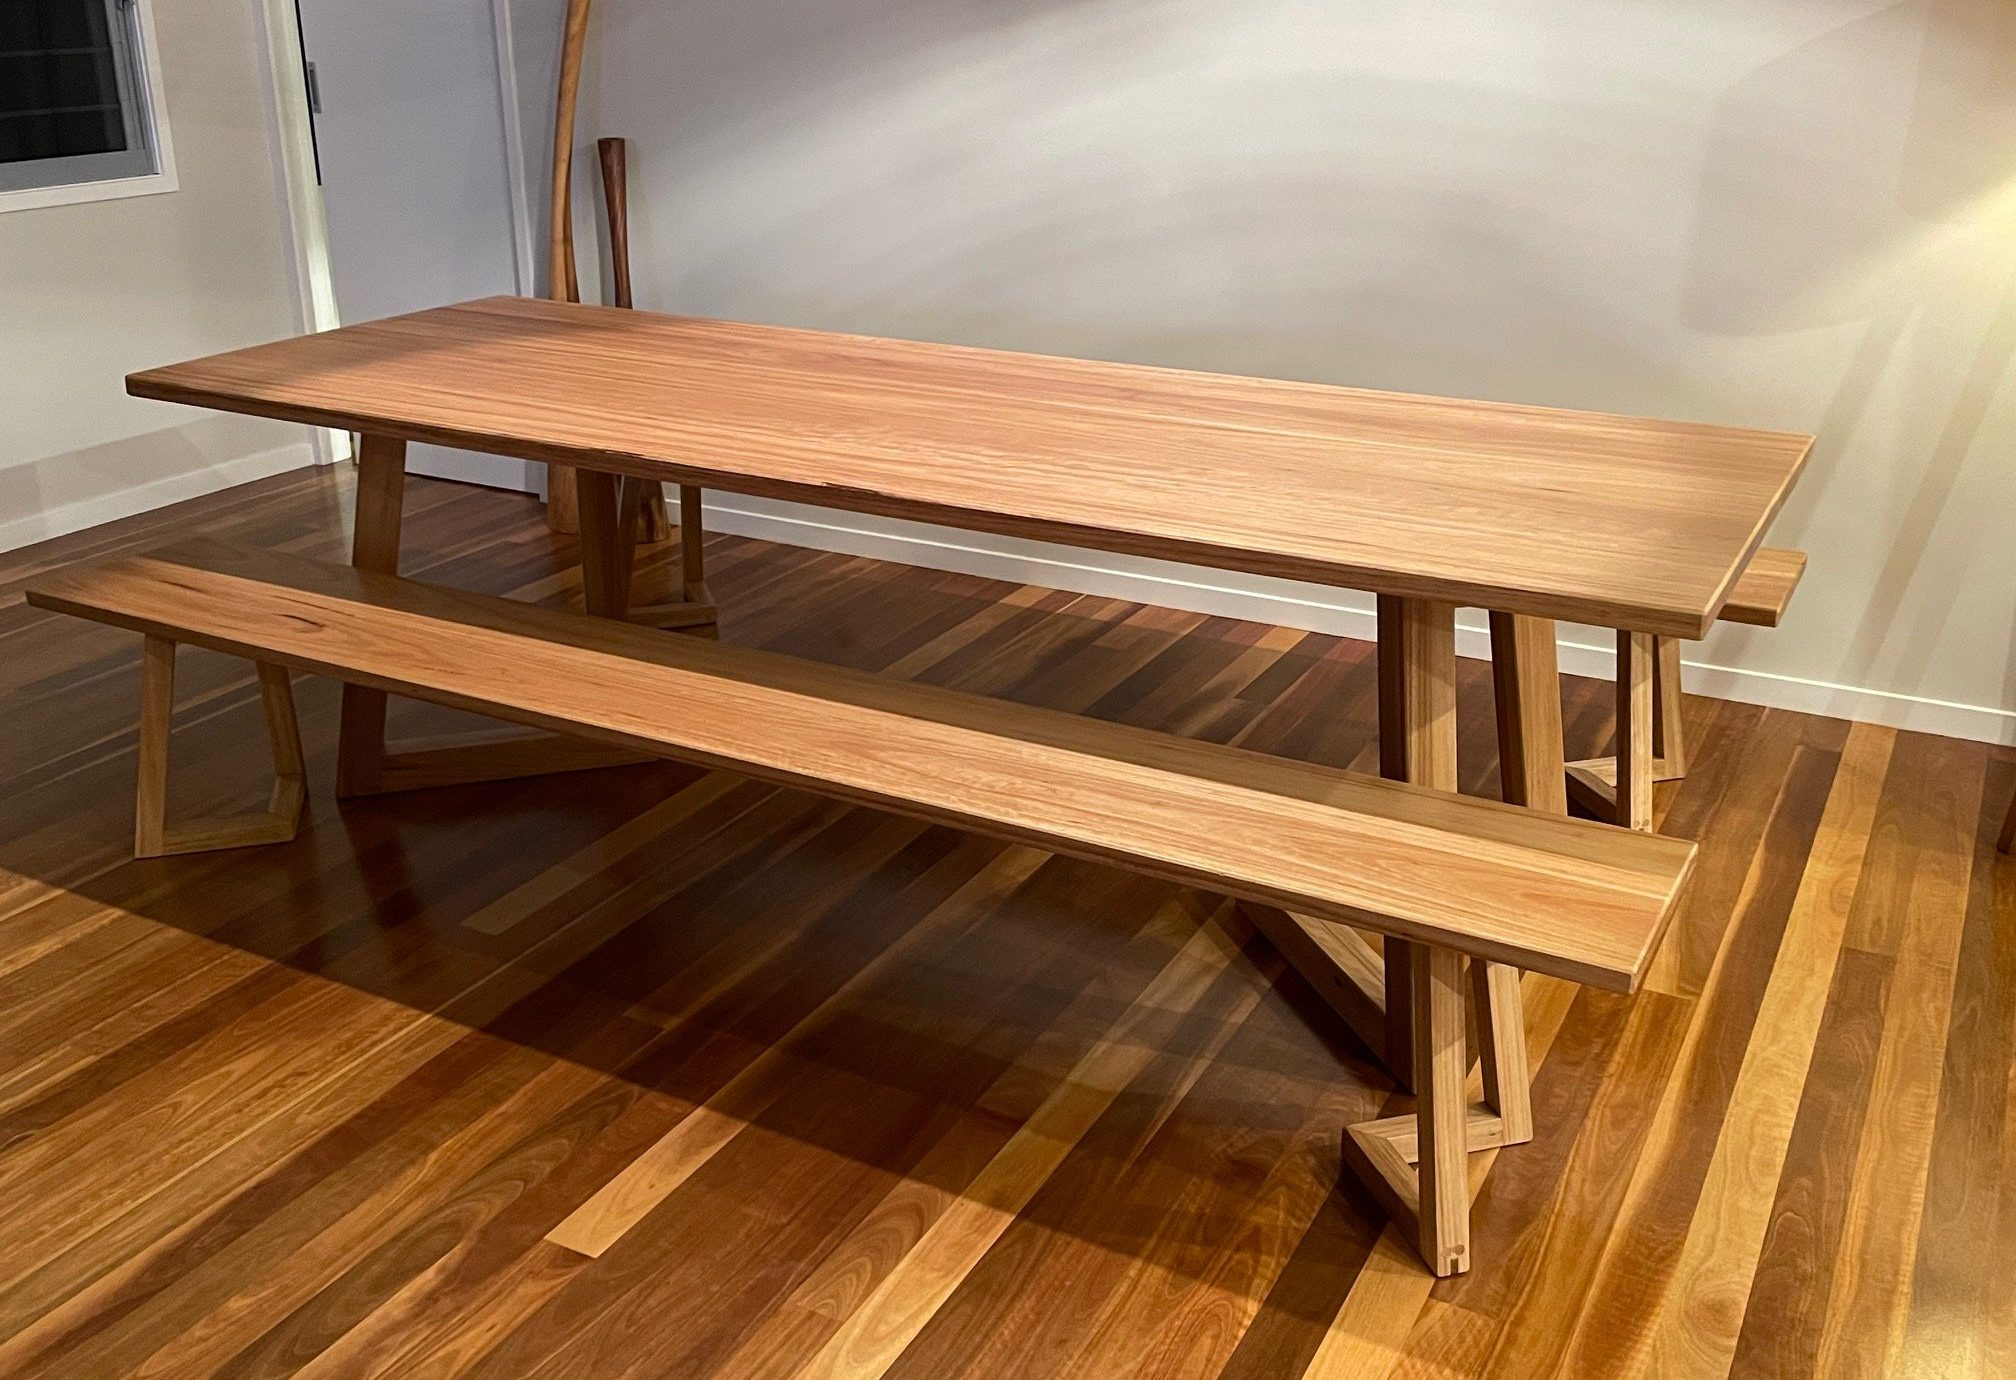 Custom timber dining table with benches